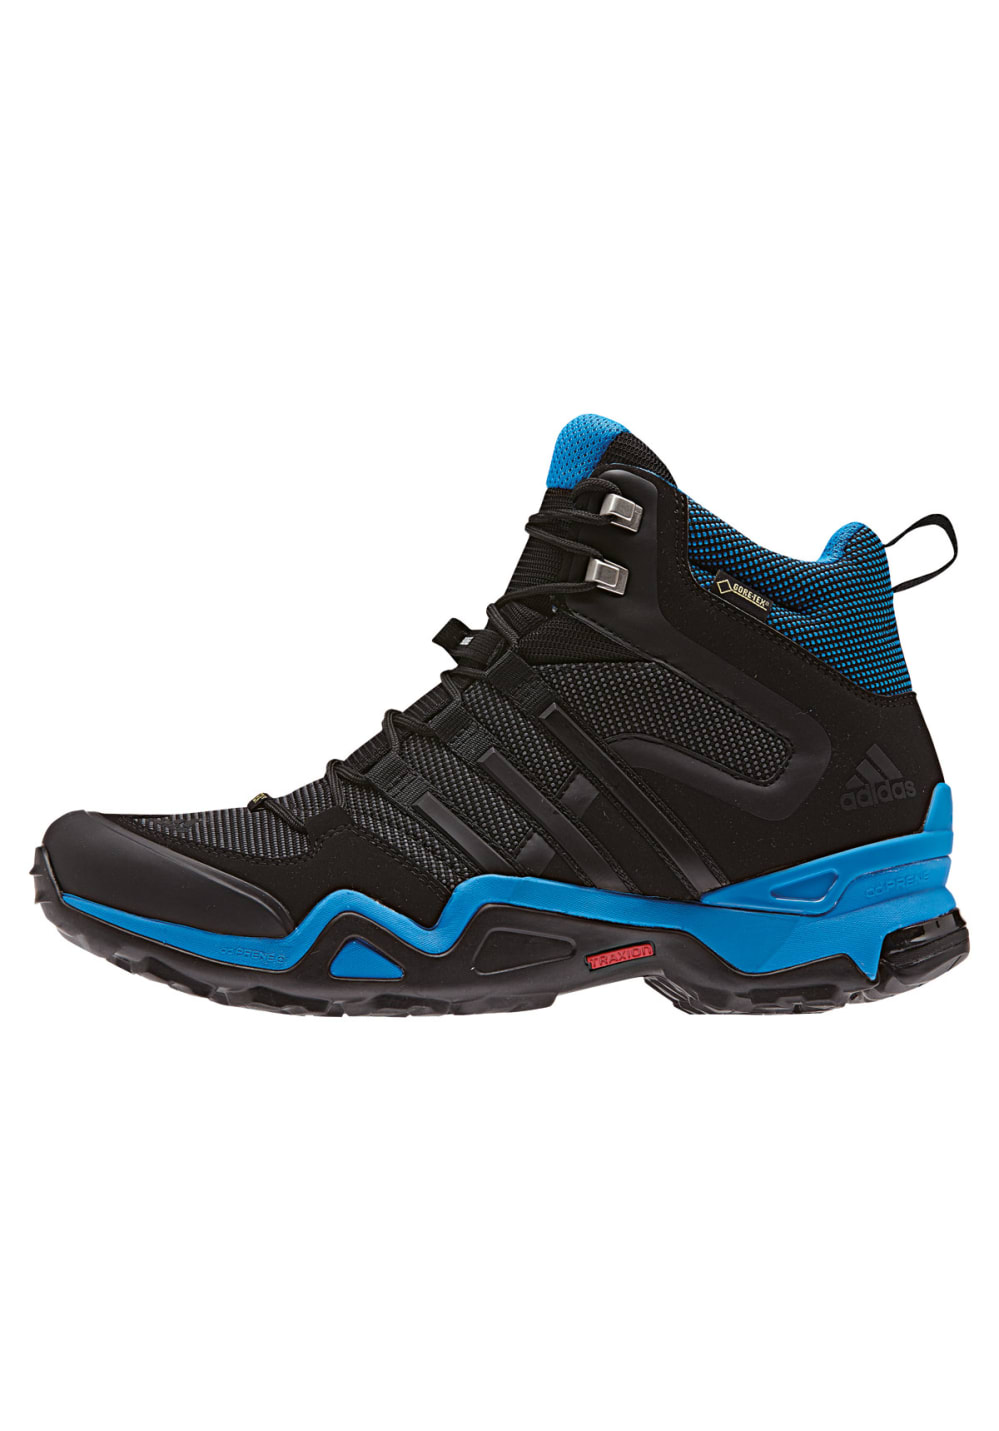 adidas Fast X High GORE-TEX® Outdoorschuh